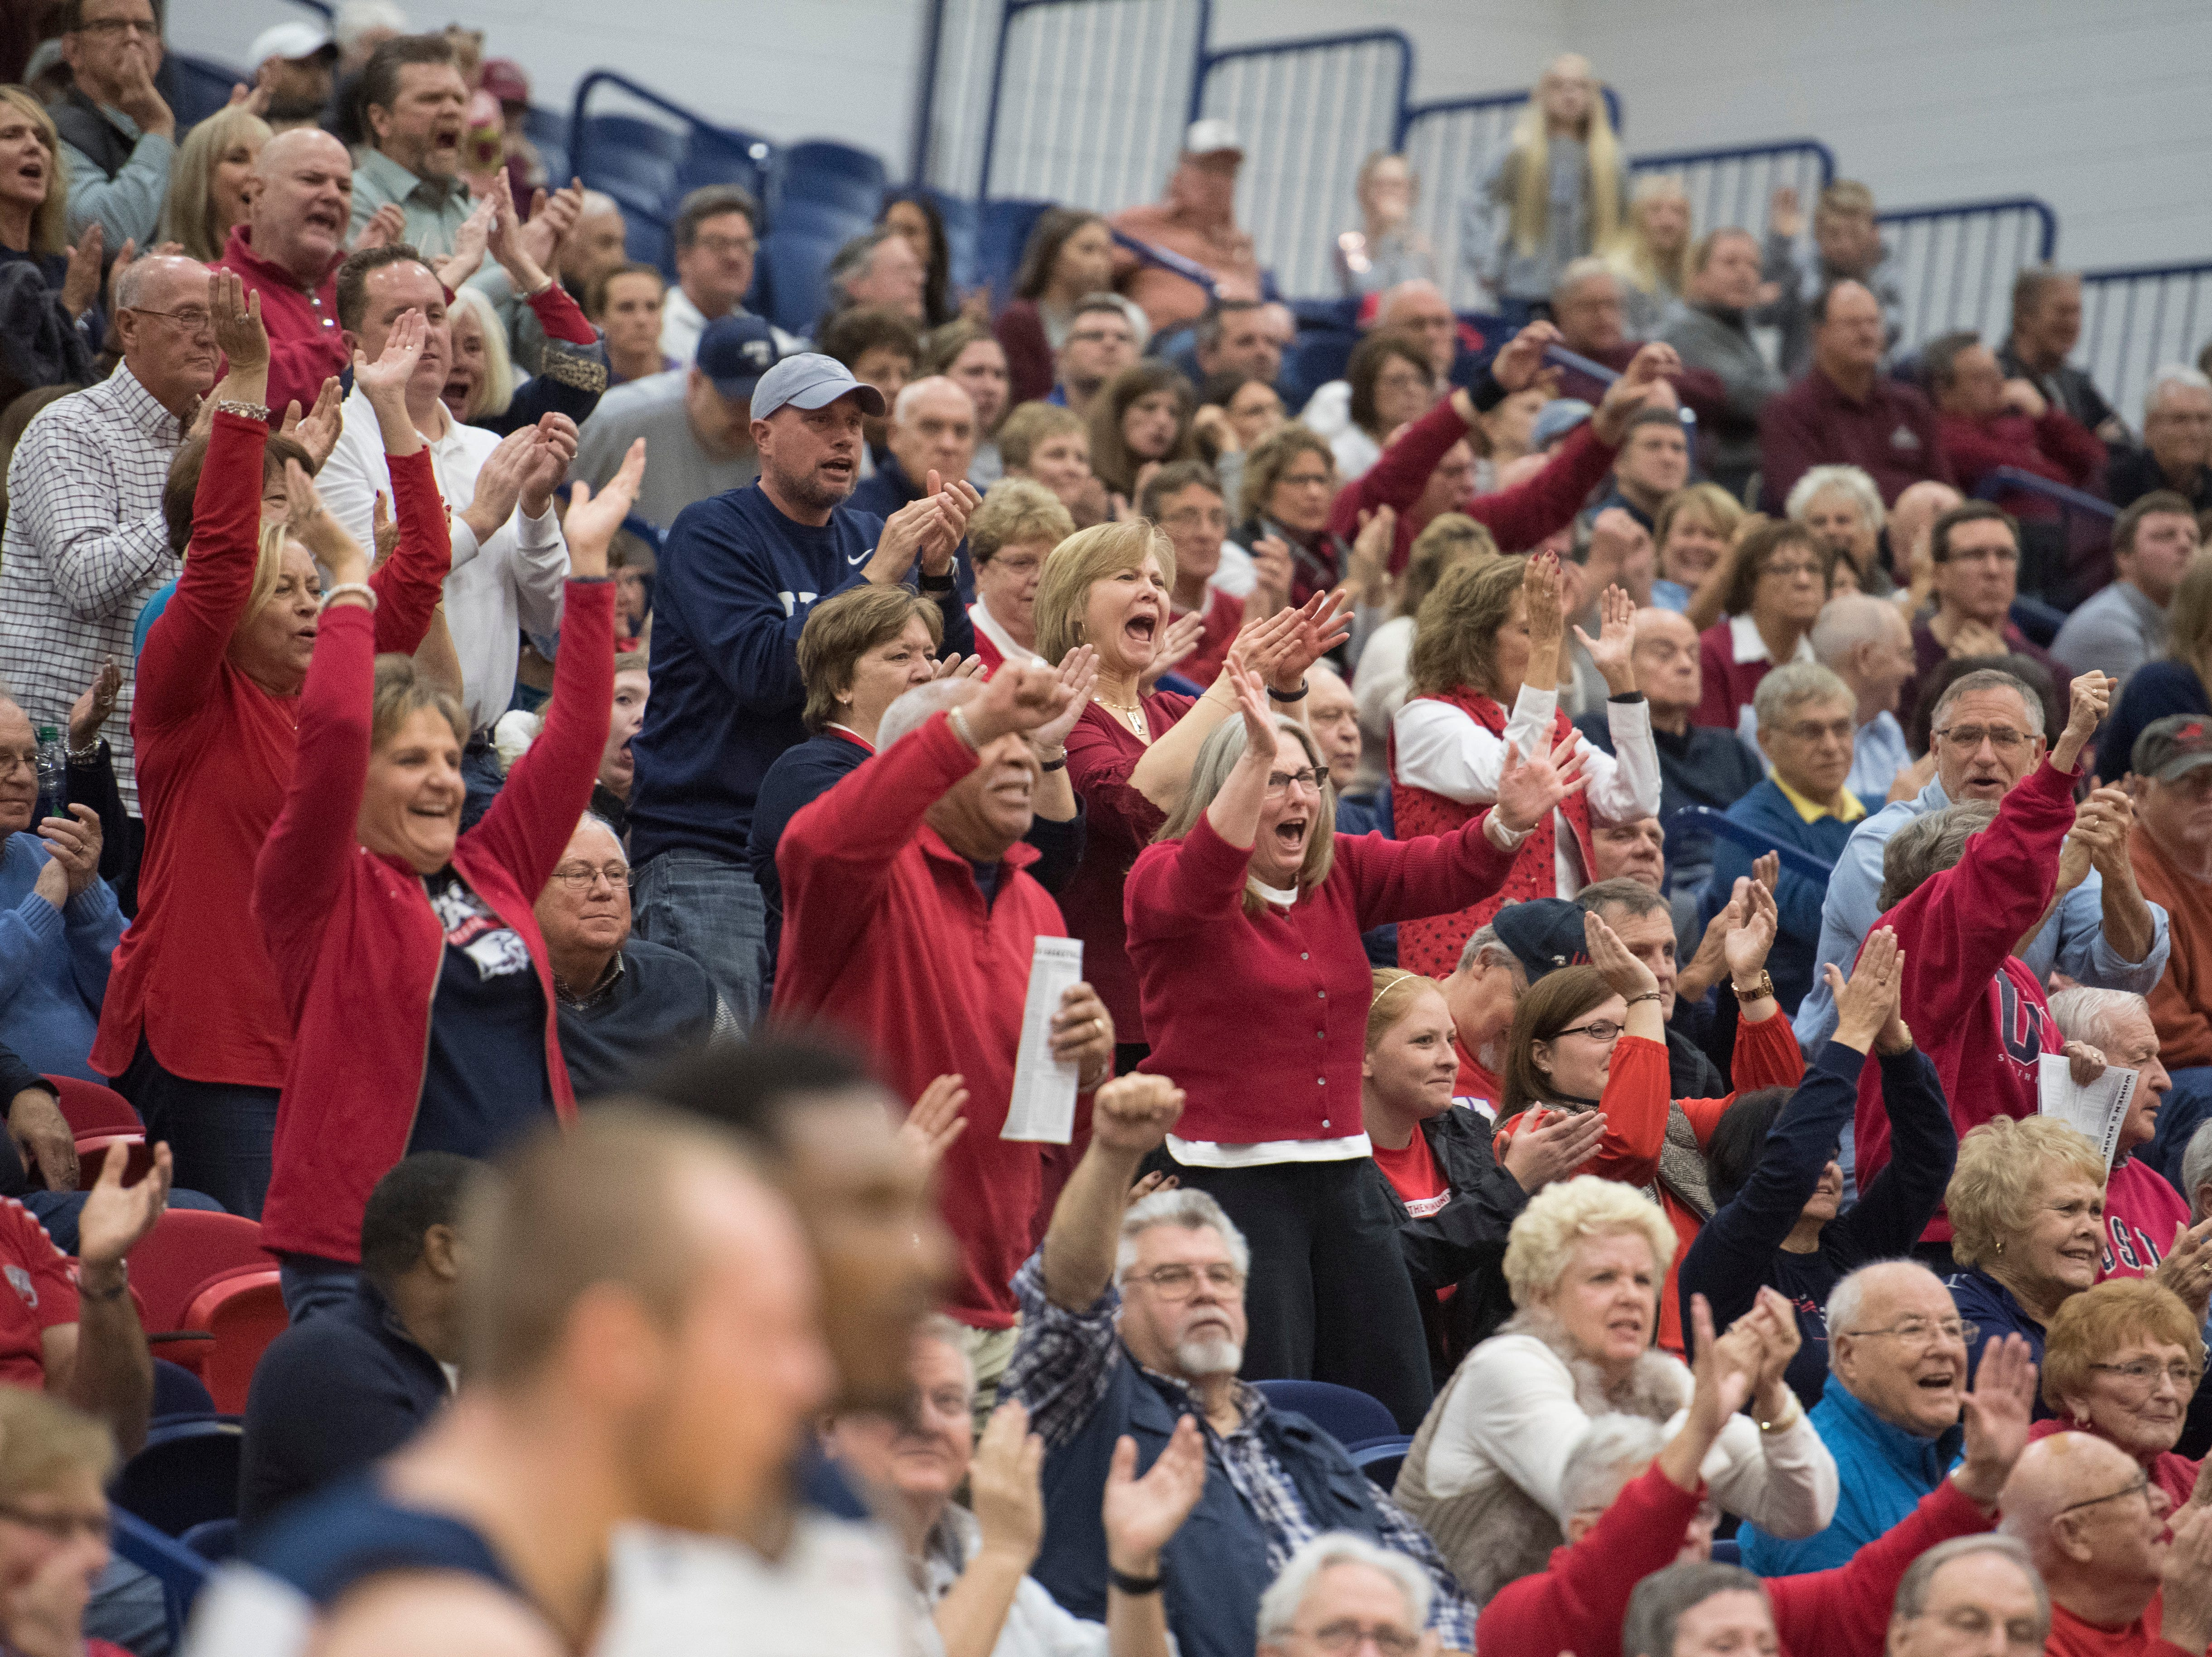 The crowd erupts in the final minutes of the USI vs Bellarmine game at the PAC Saturday, Dec. 1, 2018.